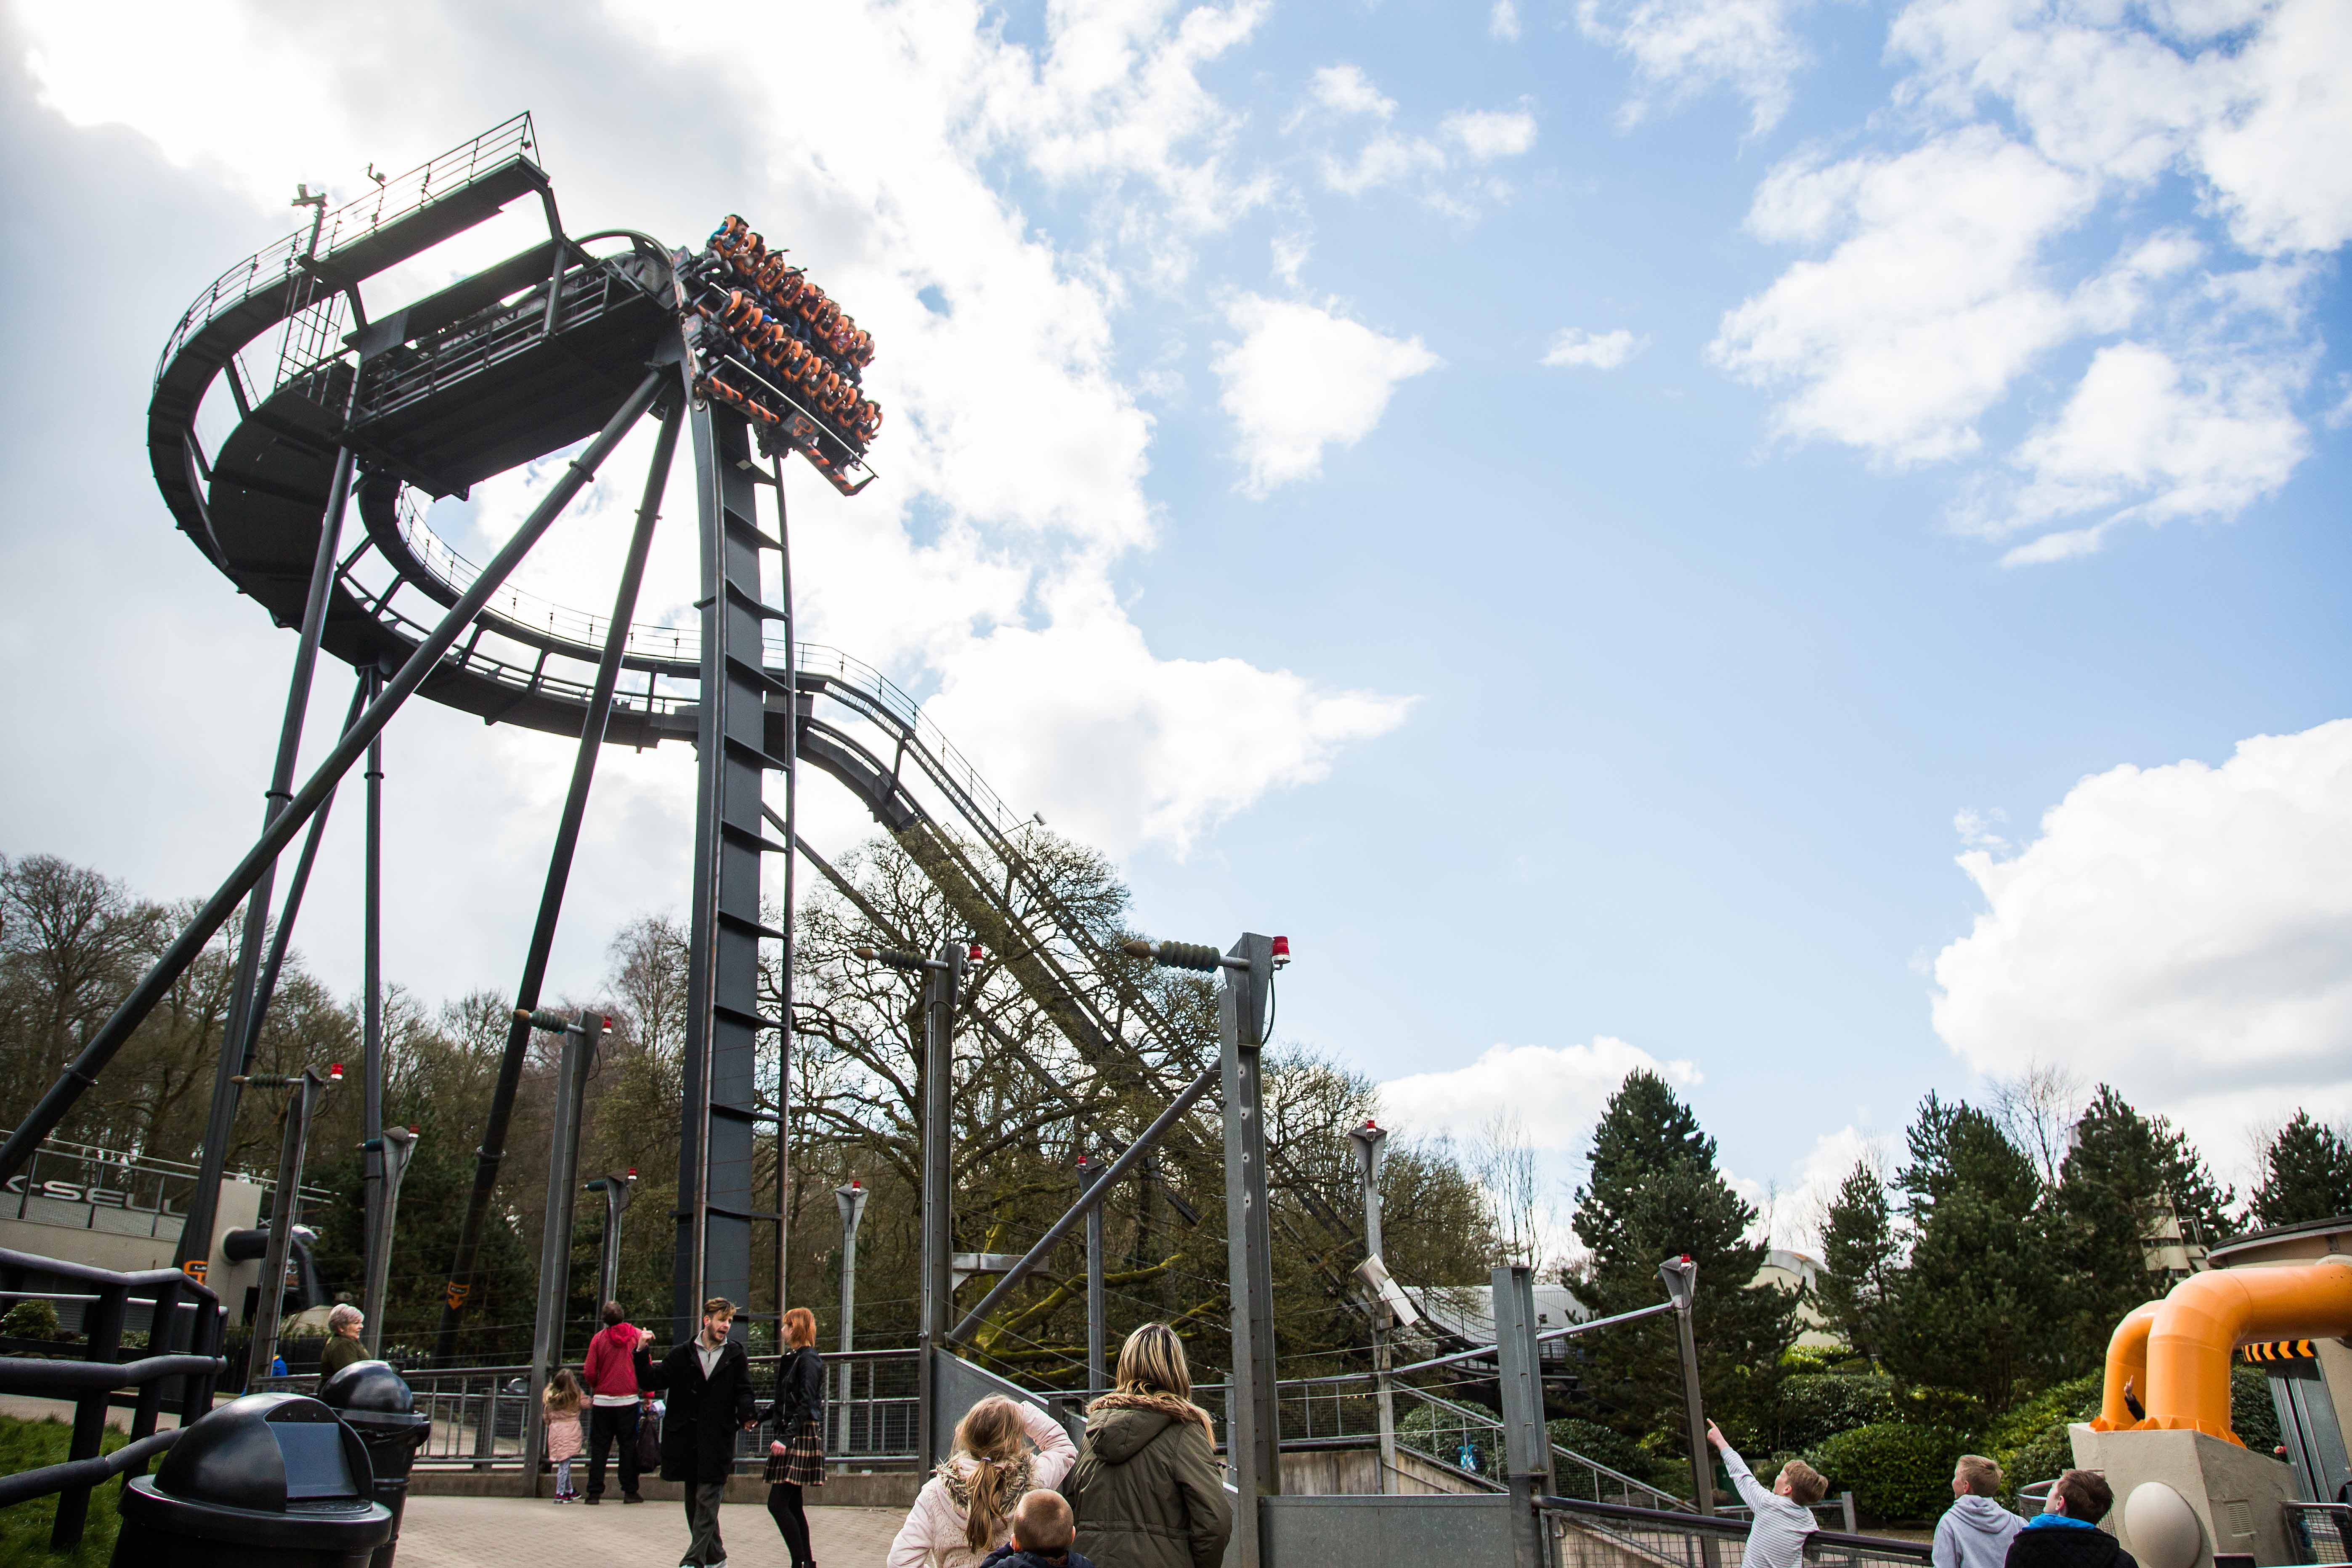 View of Oblivion at Alton Towers Resort's drop, the world's first vertical drop rollercoaster